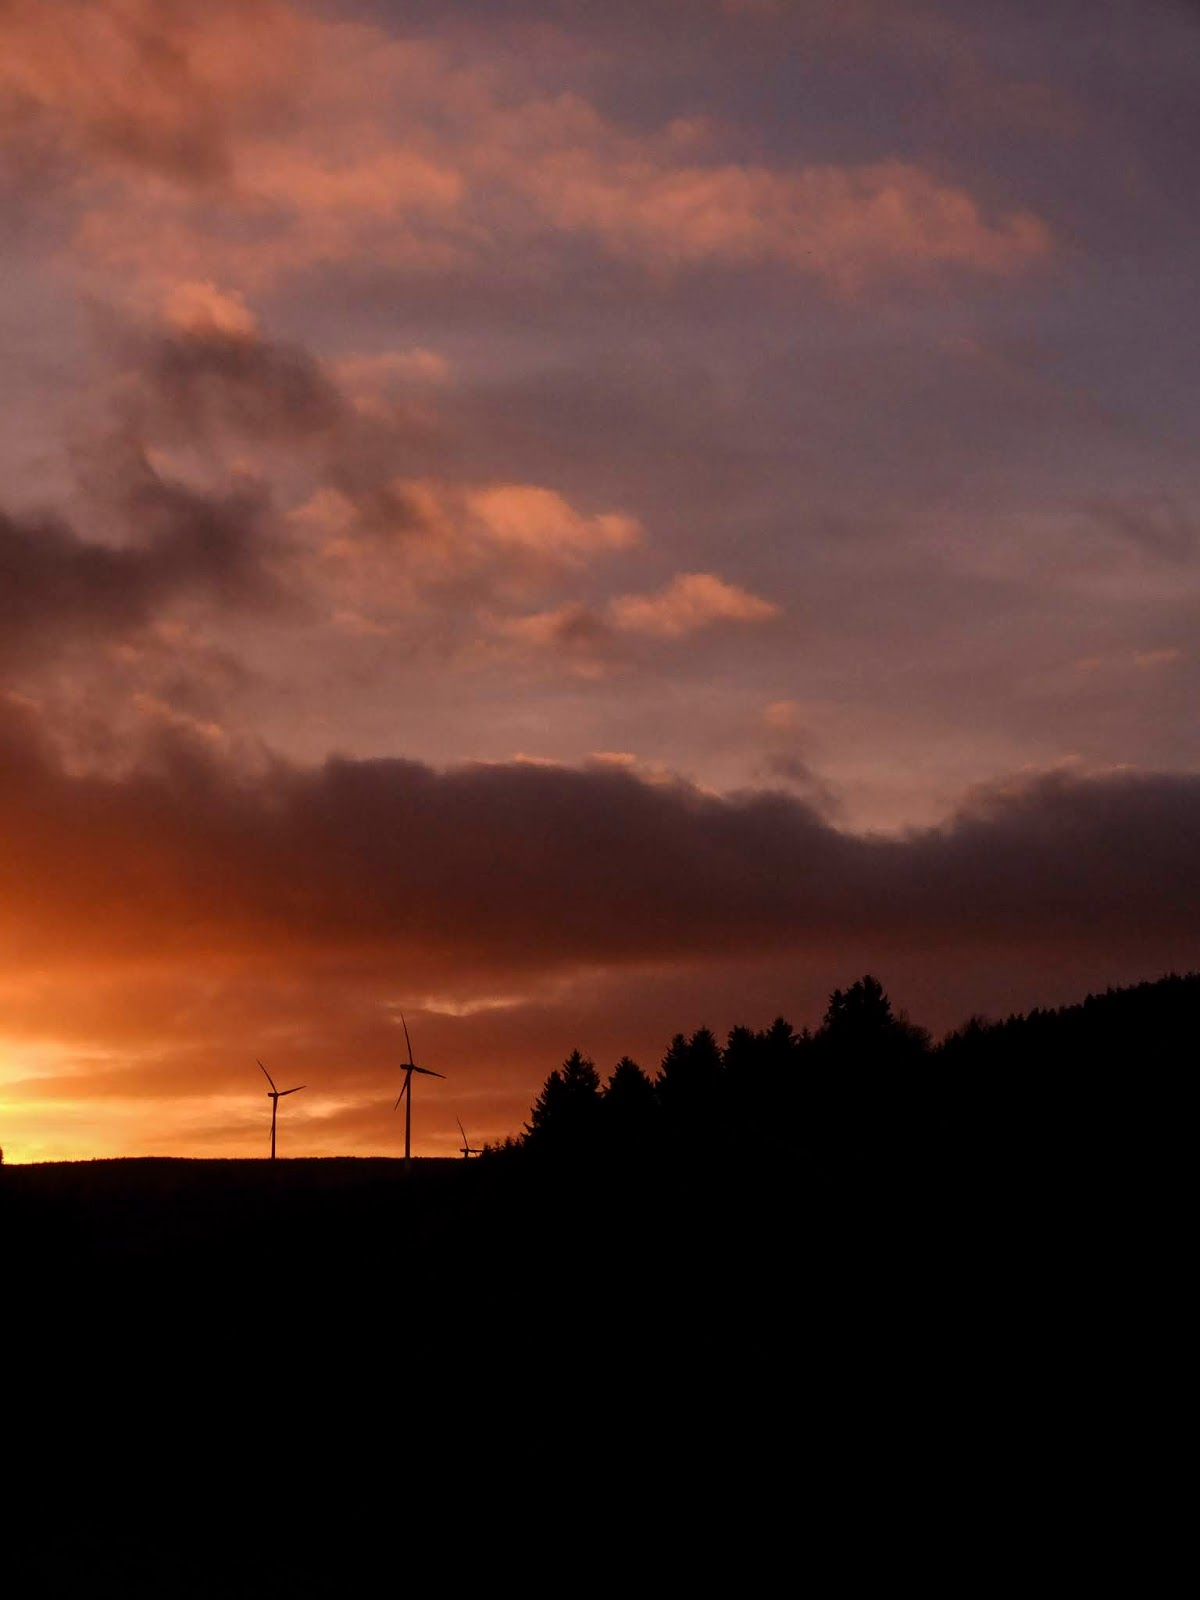 A sunset captured on a hillside in the Boggeragh Mountains in North County Cork.